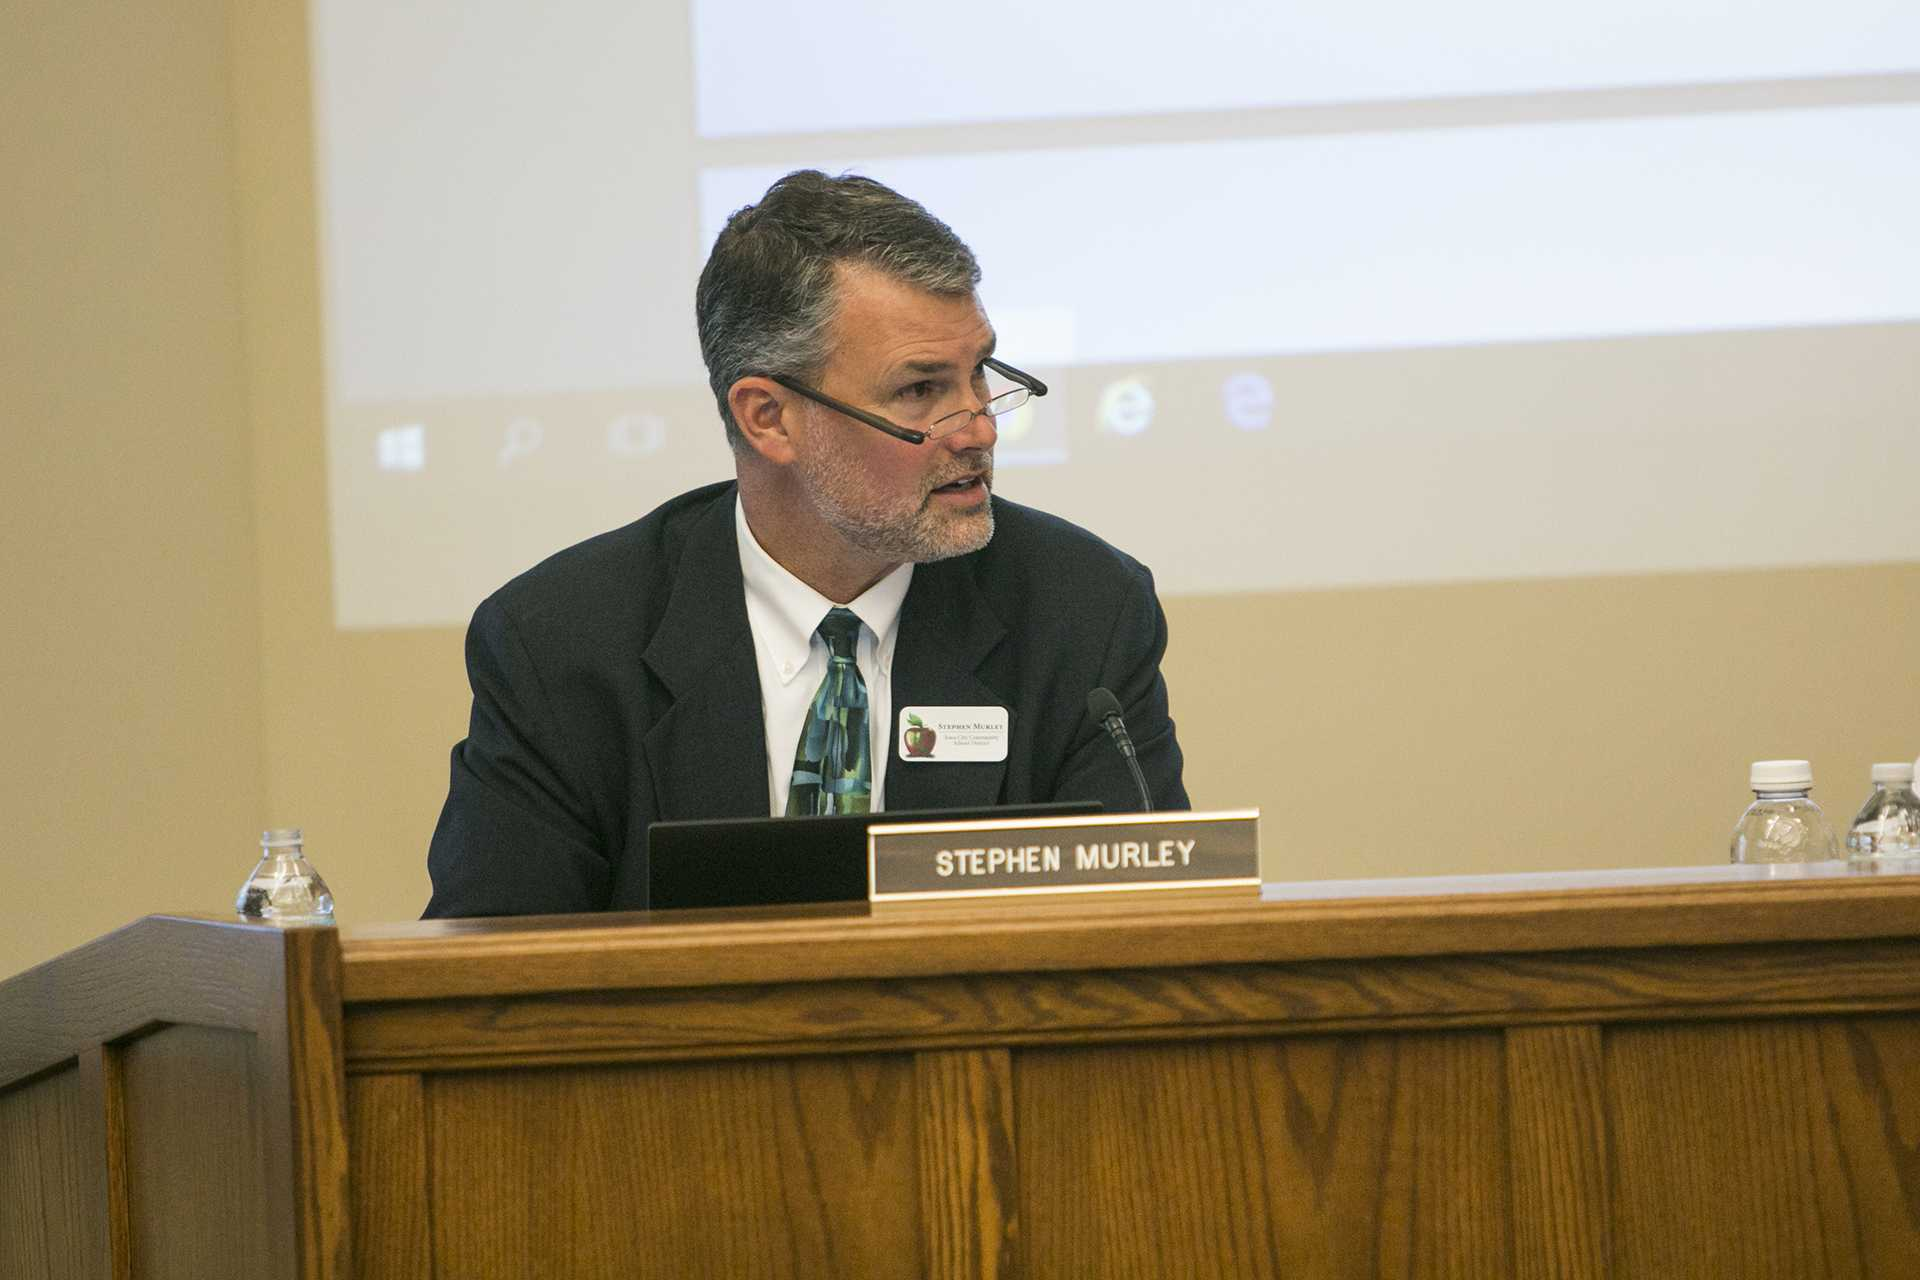 """School District President Stephen Murley speaks during the School Board meeting on Oct. 24. The district has decided to get rid of its controversial """"seclusion rooms.""""  (Joseph Cress/The Daily Iowan)"""